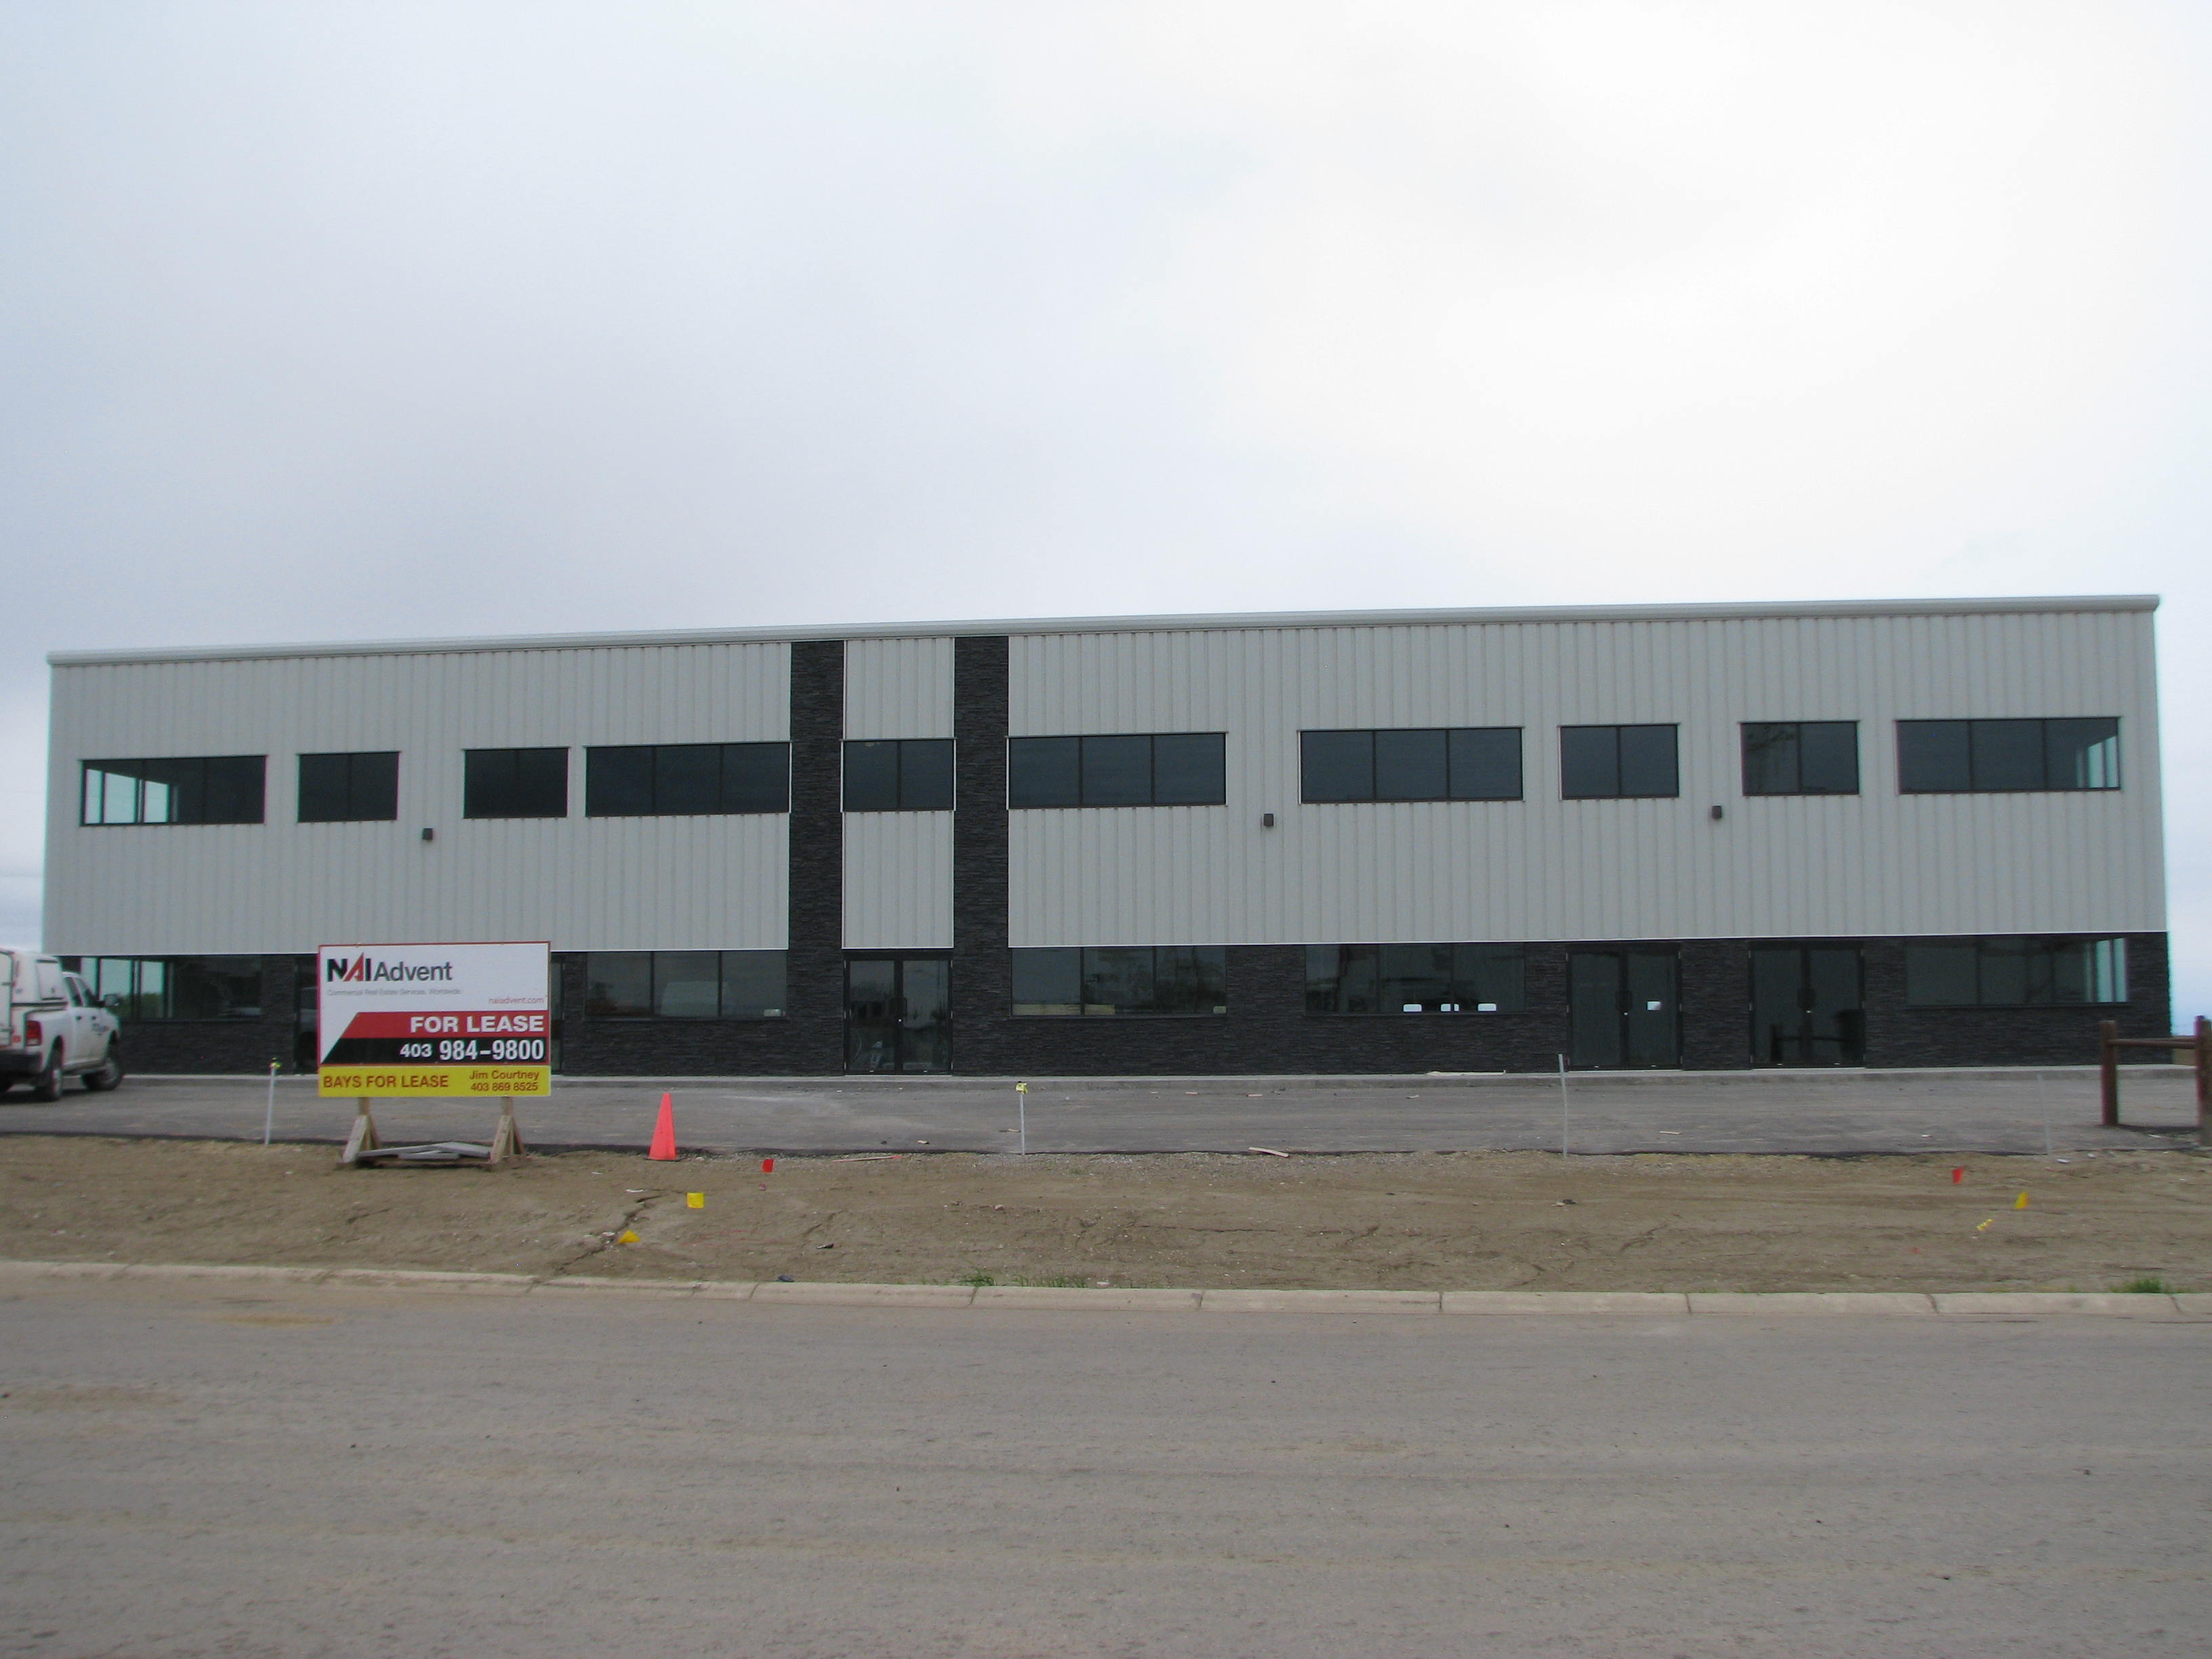 For Lease: Carstairs Industrial Bays for Sale/Lease - 4 BAYS LEFT